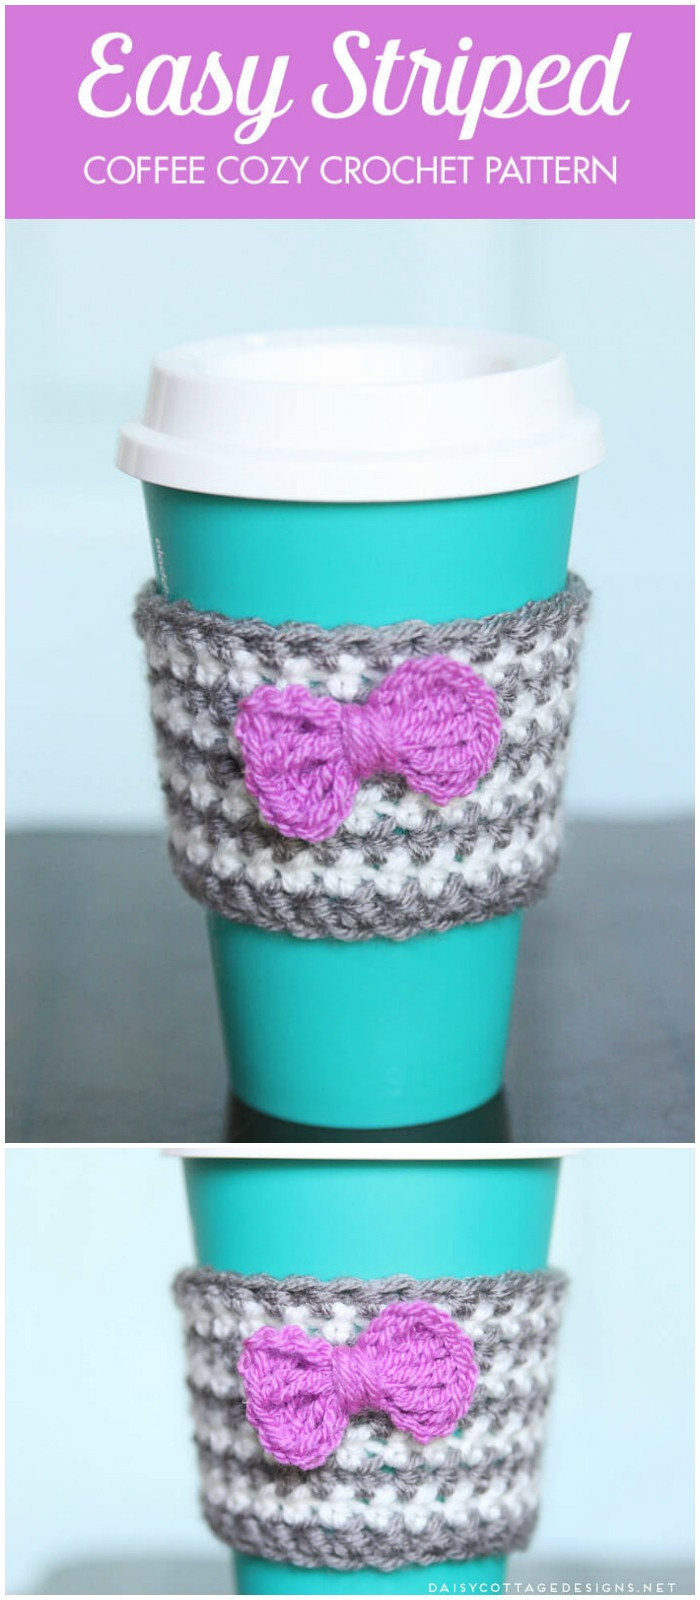 Crochet Coffee Cup Cozy Fresh 8 Crochet Cozy Patterns Free Crochet Patterns • Diy Home Of Crochet Coffee Cup Cozy Inspirational 35 Easy Crochet Patterns